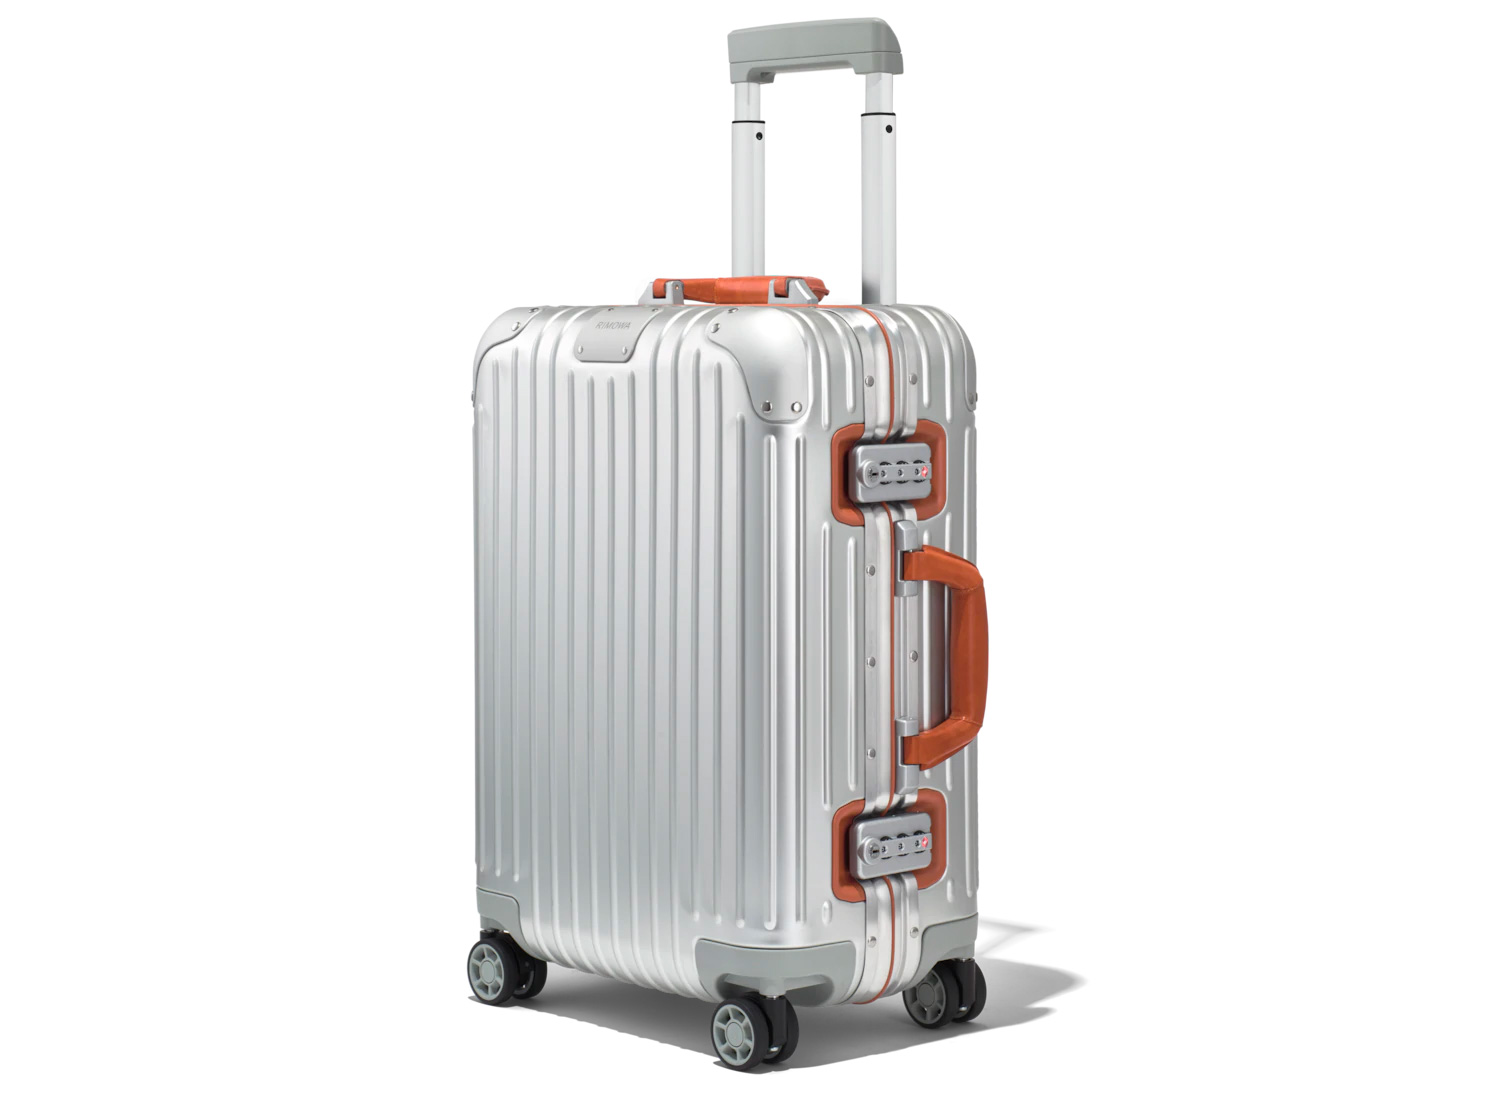 RIMOWA's Cabin Twist Carry-On is a Compact Classic at werd.com